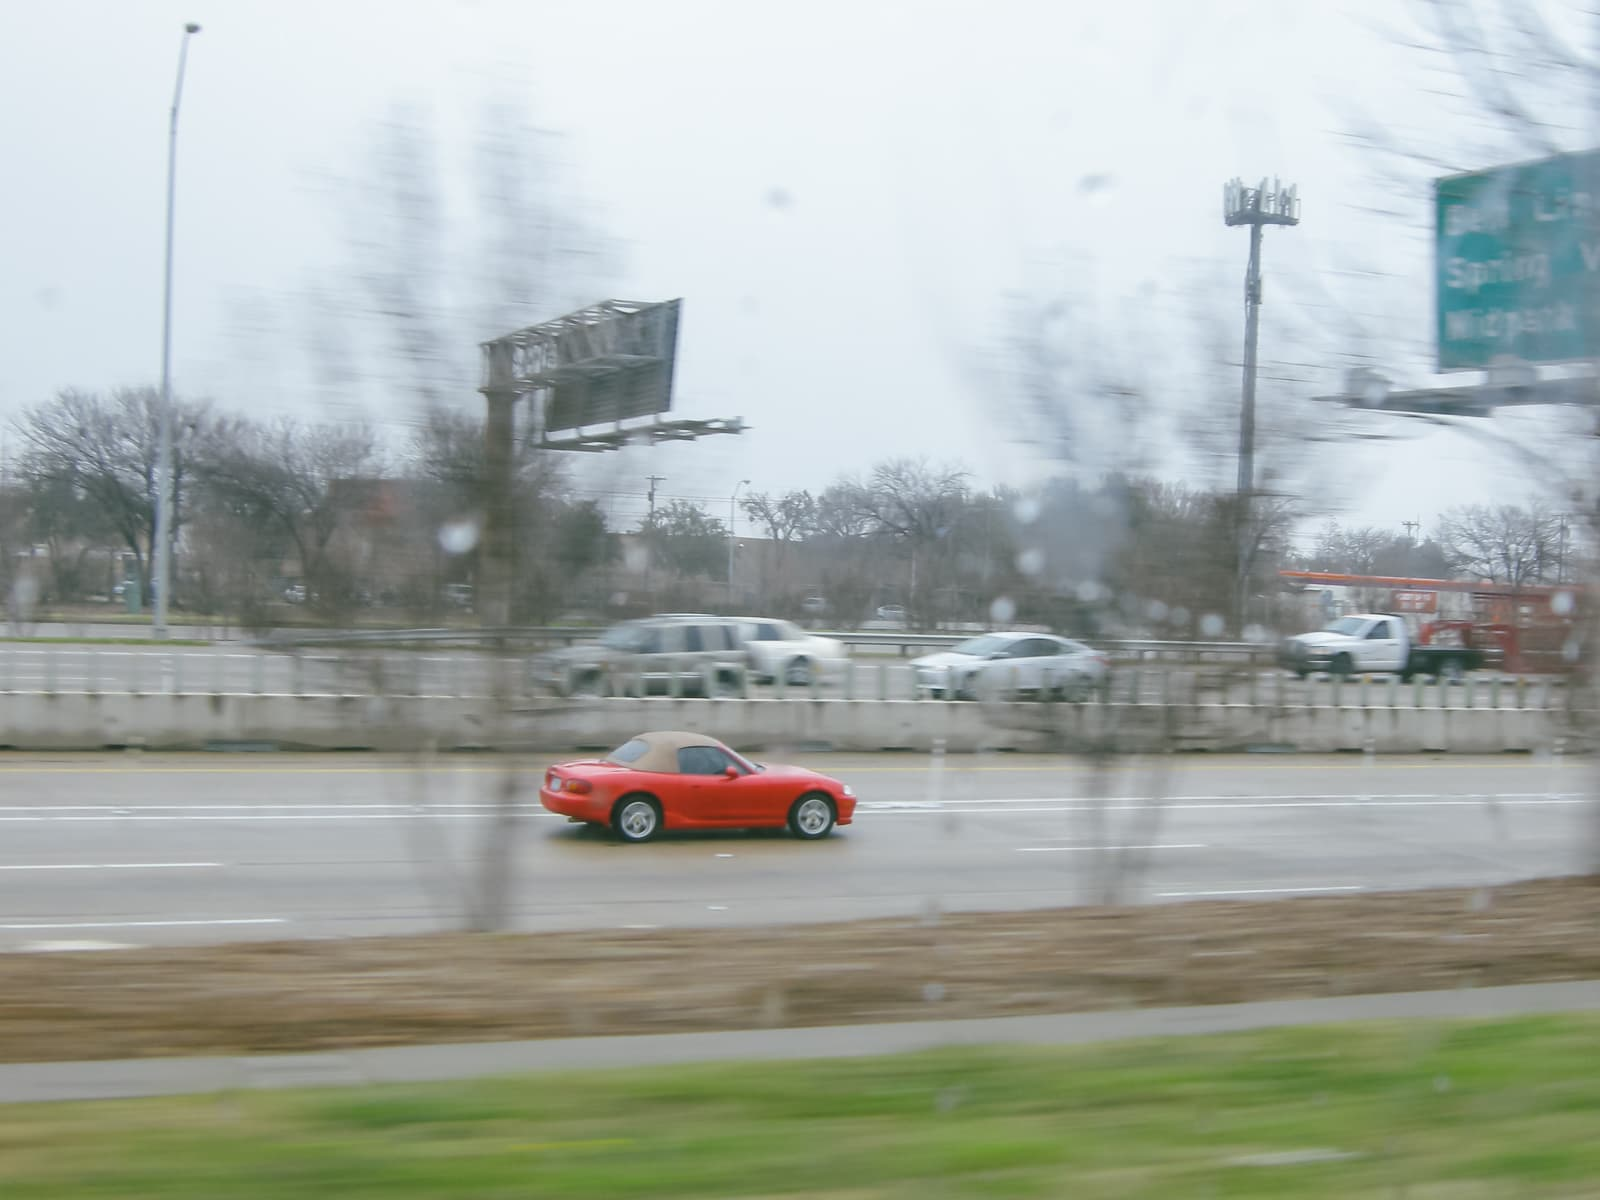 A red car driving on highway 75